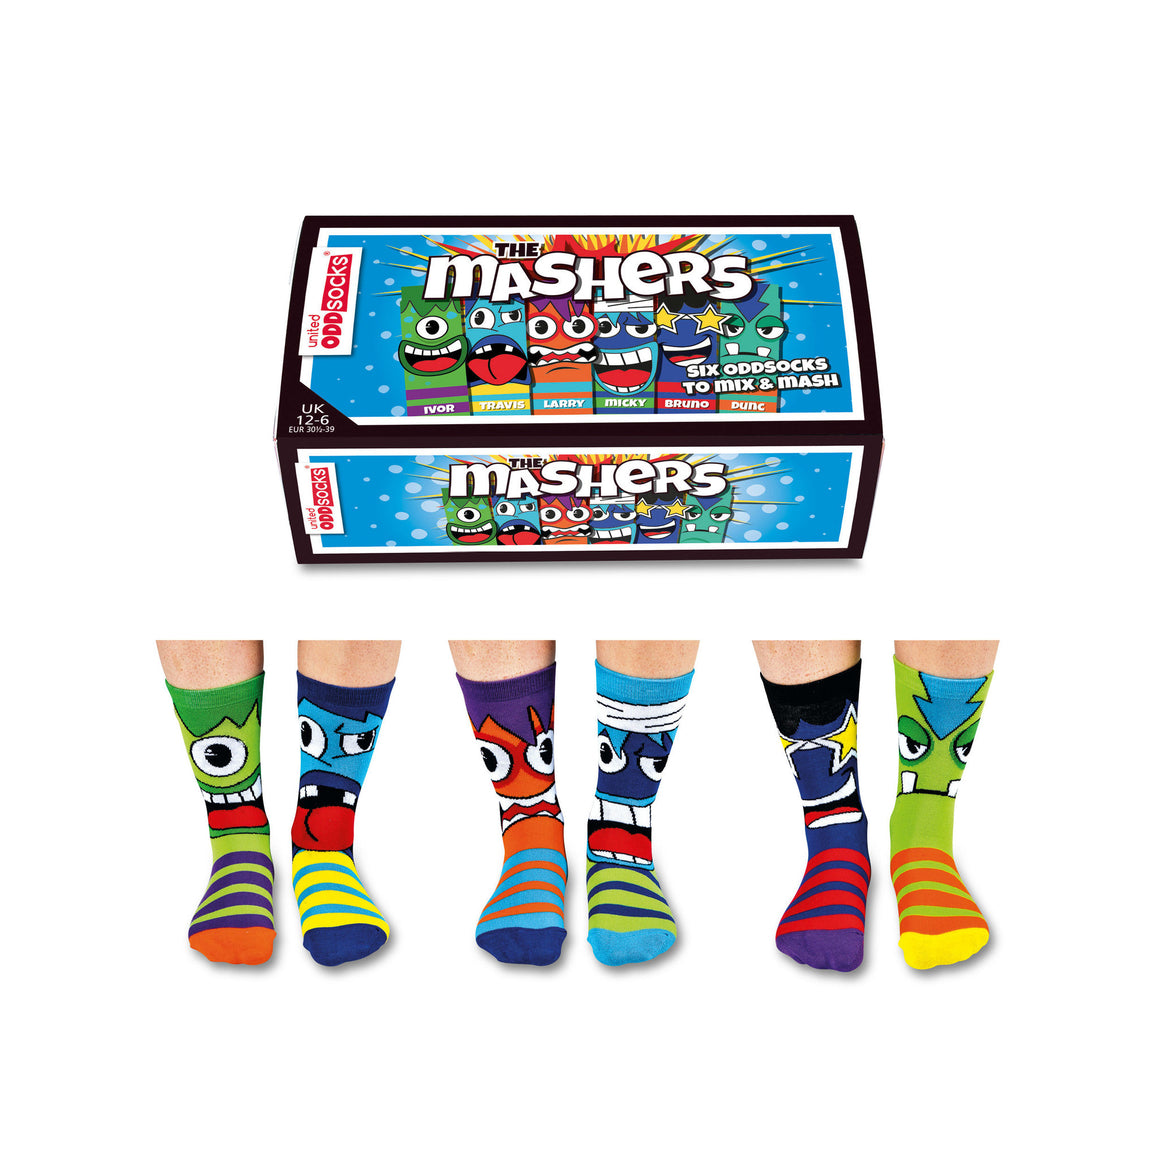 United Odd Socks The Mashers Boys Gift Box - The Love Trees